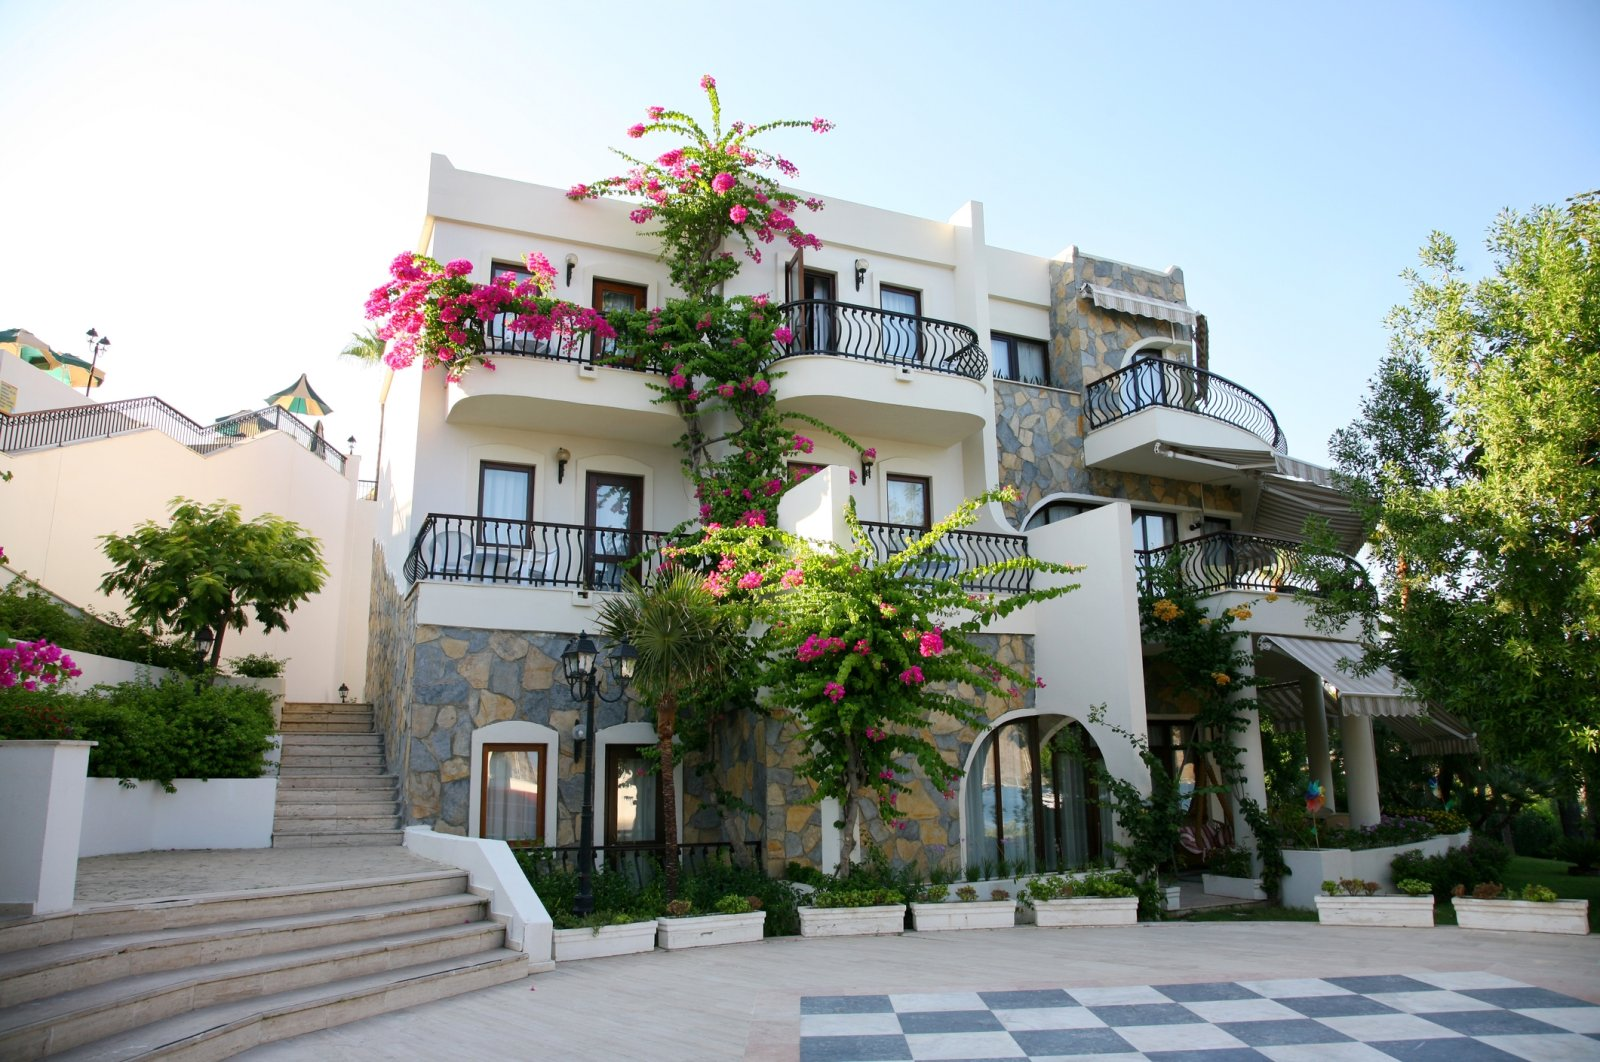 Foreigners looking for holiday homes often prefer luxury villas, such as the one pictured here in Bodrum, southwestern Turkey, Aug. 10, 2013. (iStock Photo)